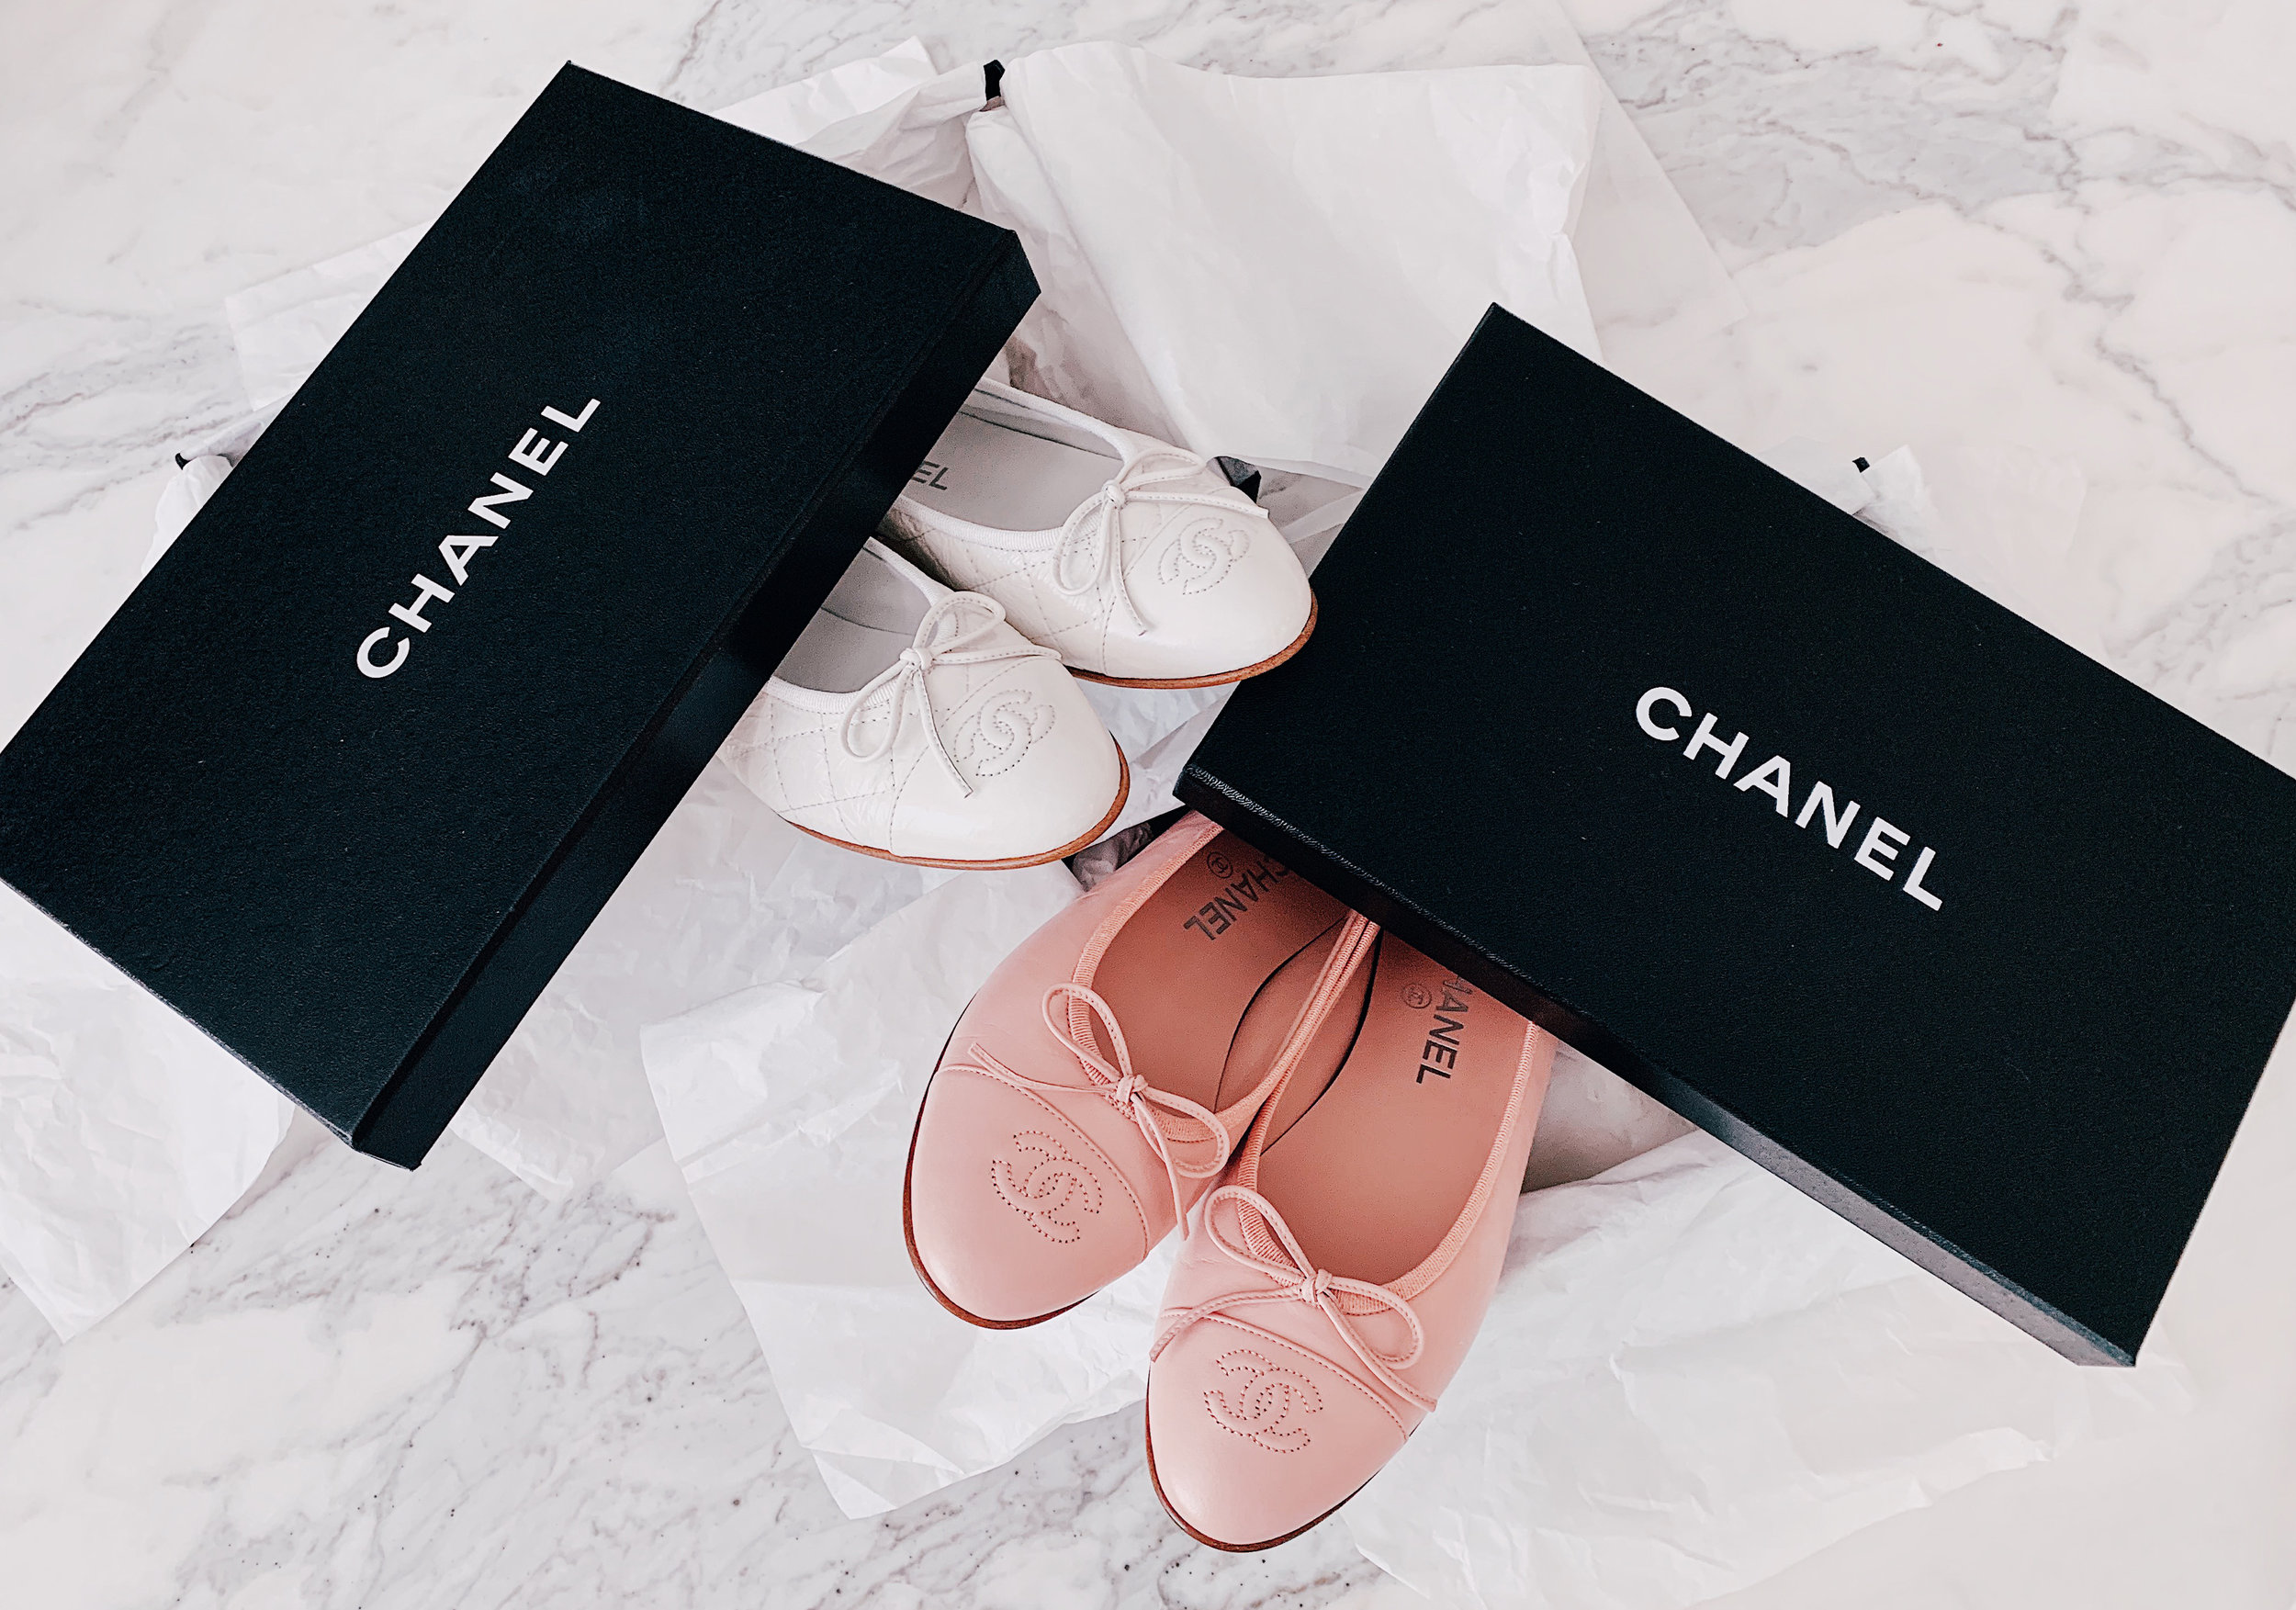 Dallas Chanel Ballet Flats.jpg